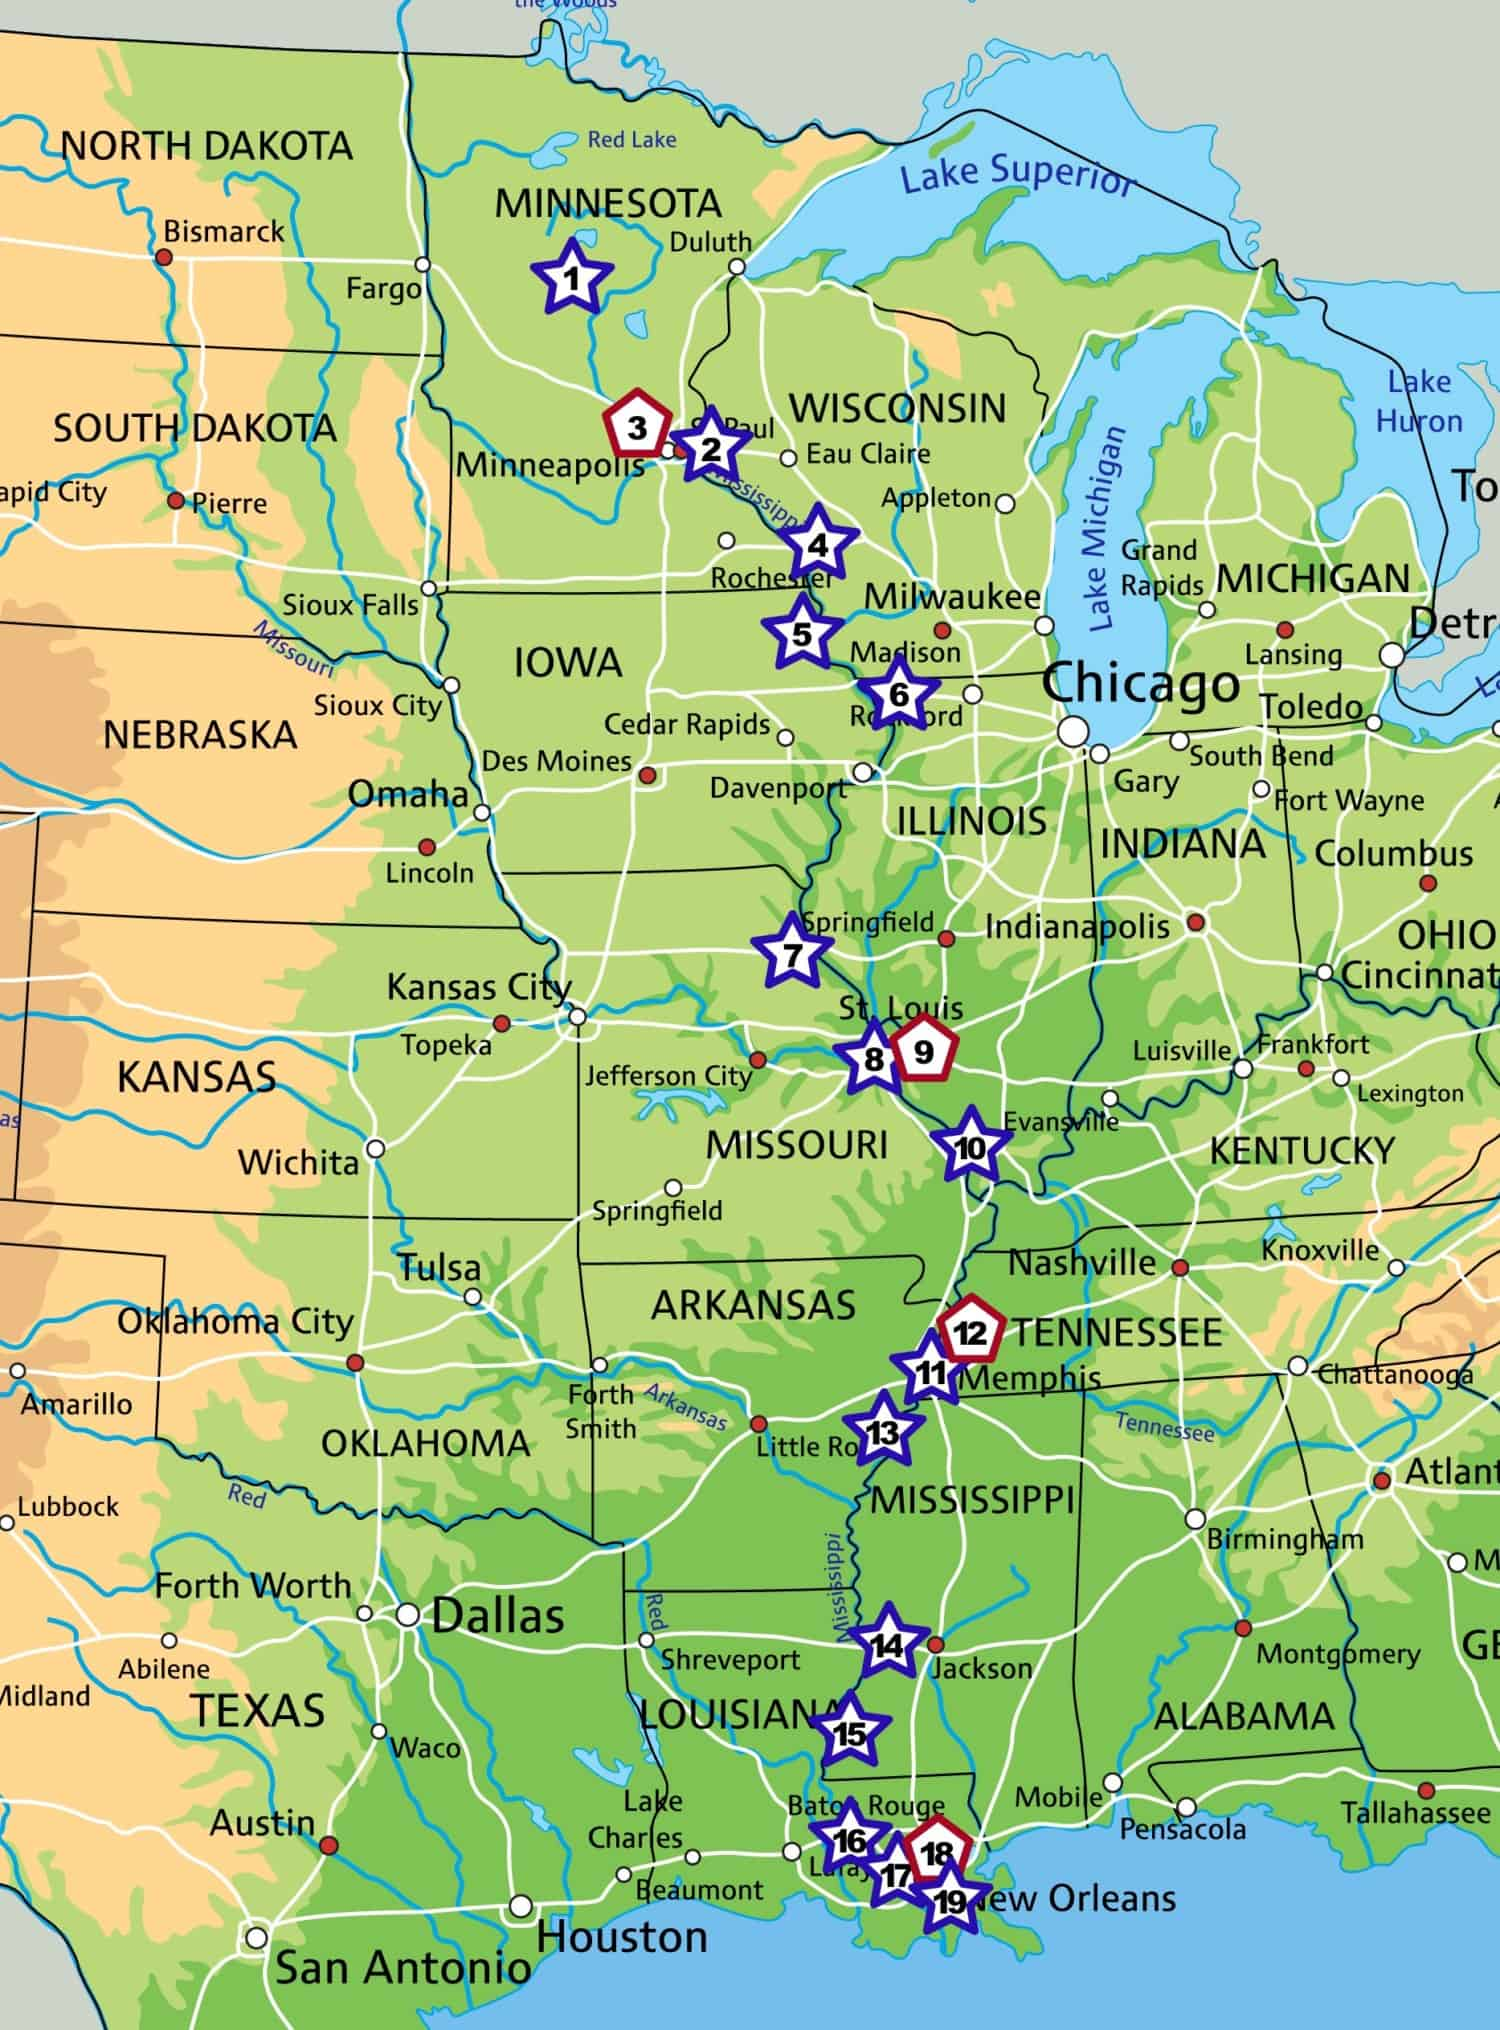 Road map showing pet friendly stops along the Great River Road from Minneapolis, MN to New Orleans, LA